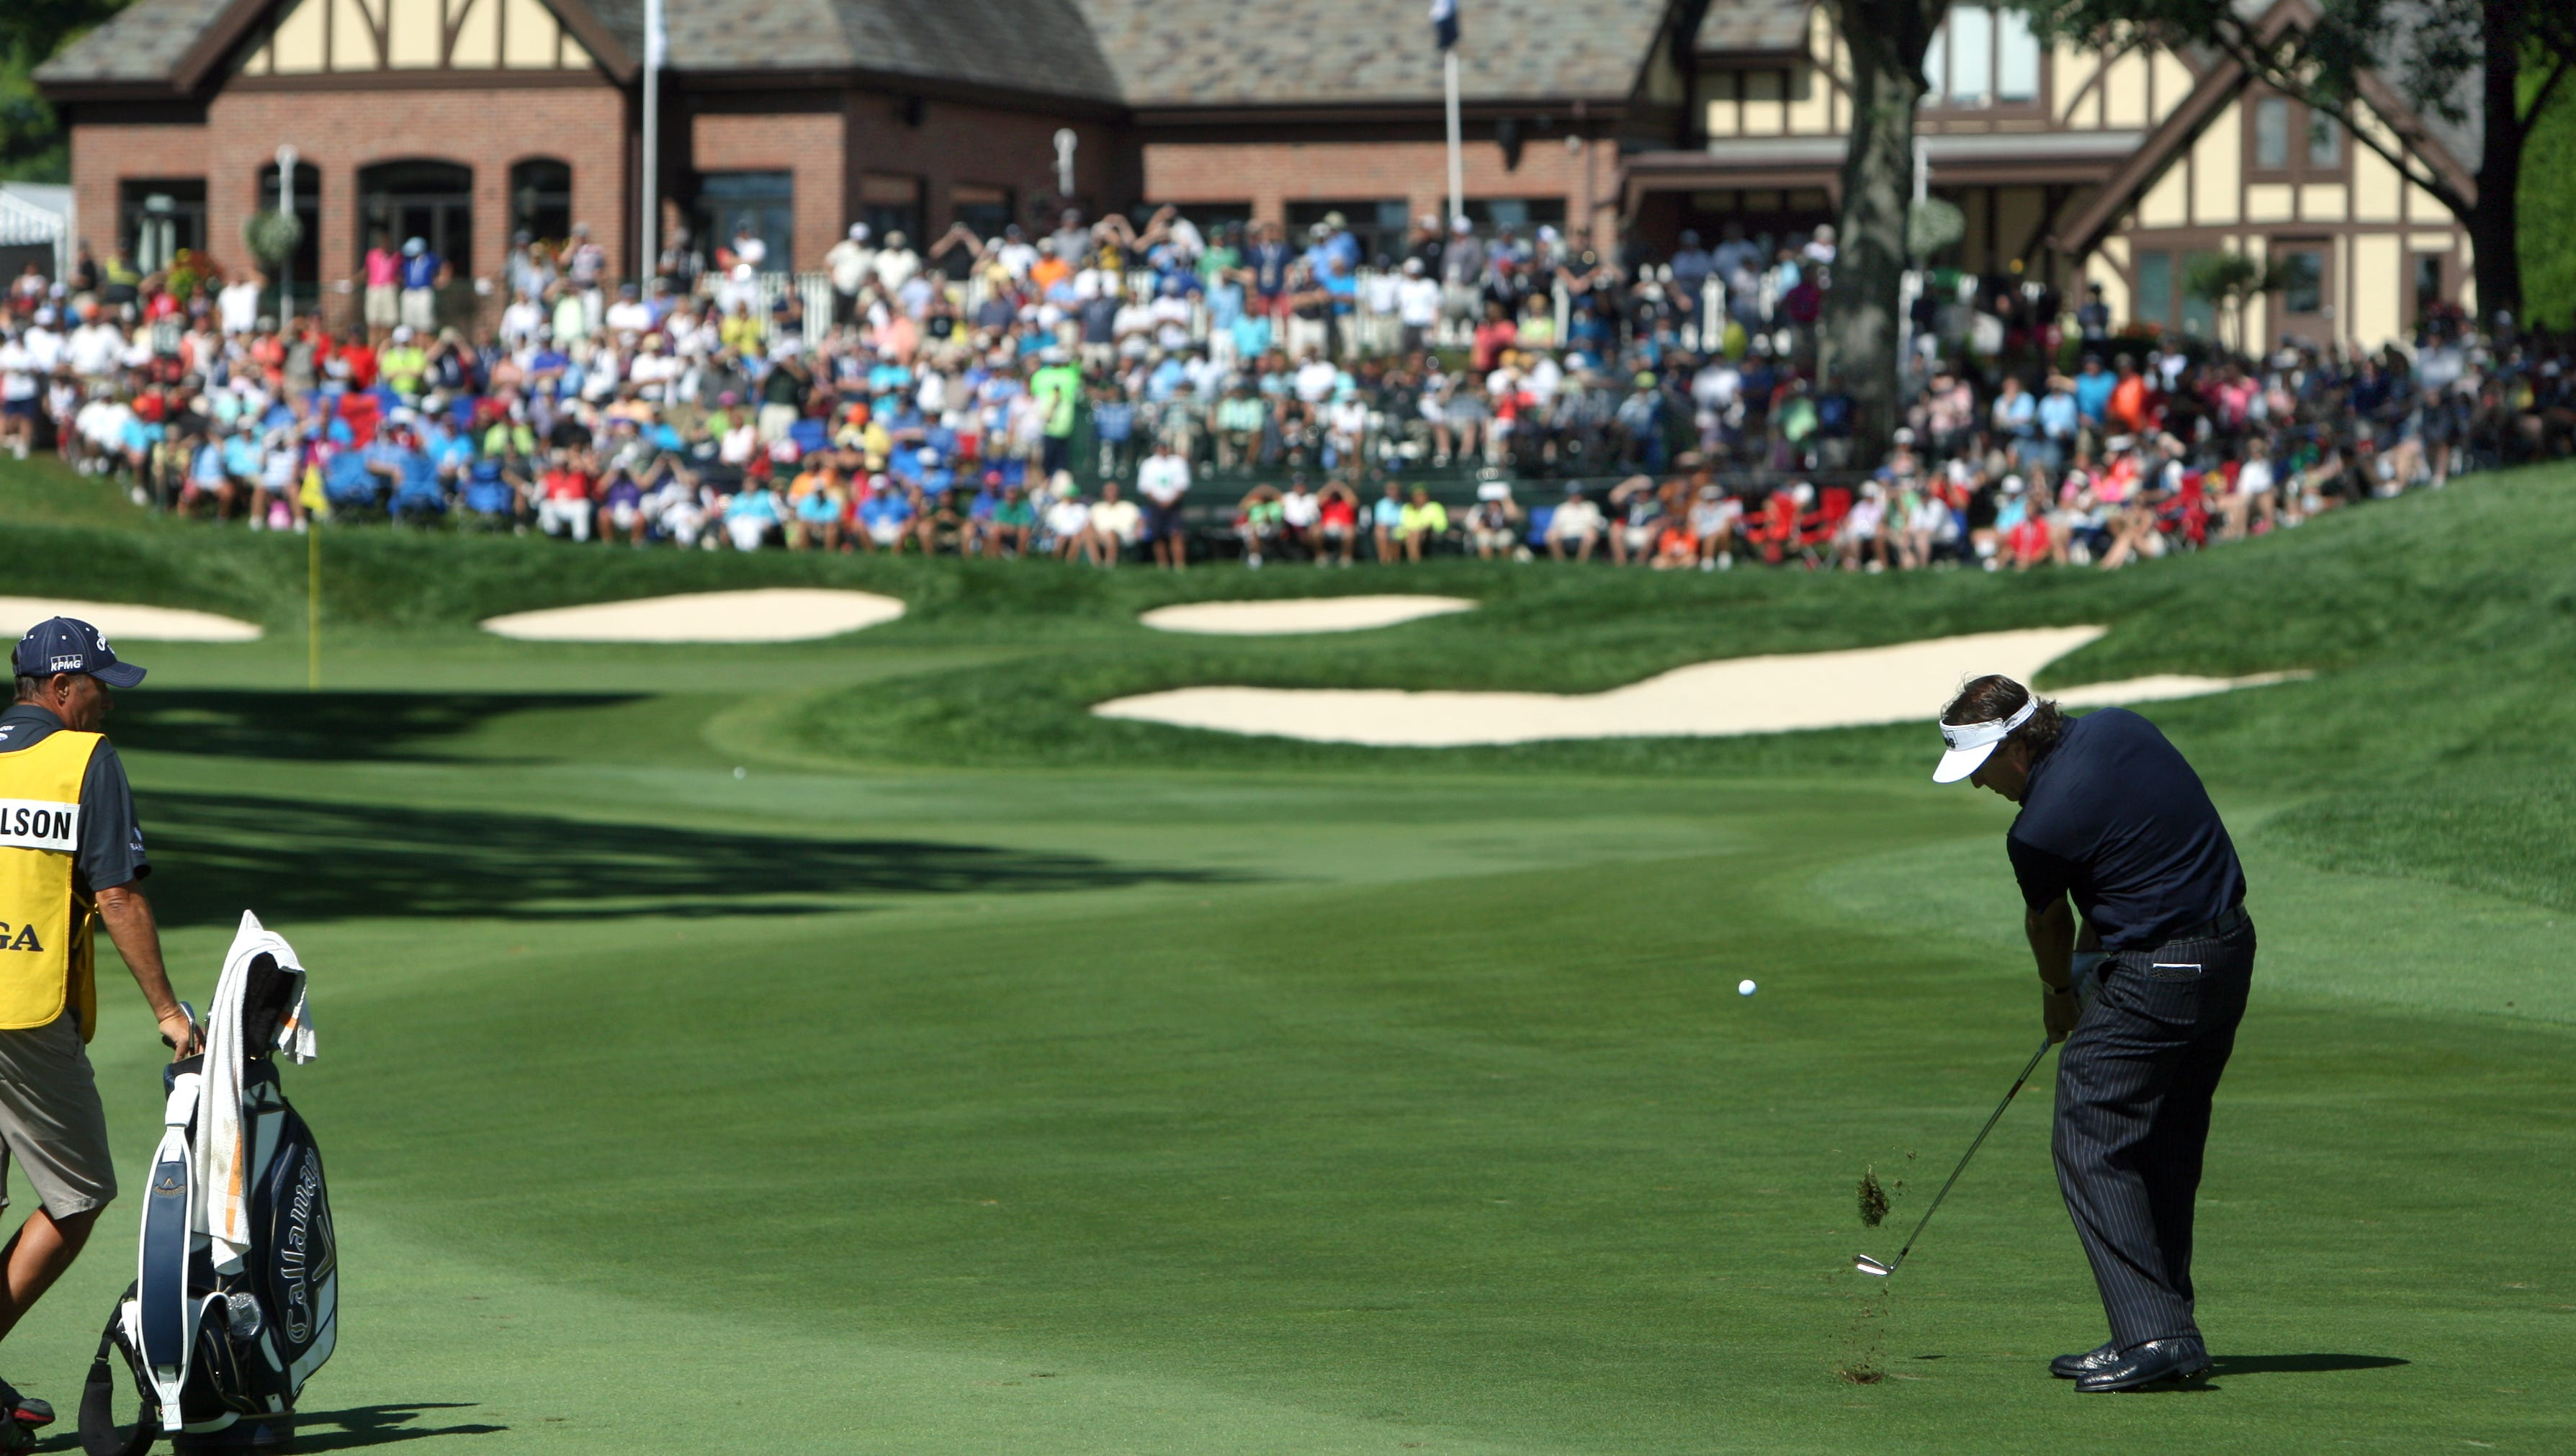 Phil Mickelson swings towards the green on 13 during the final round of the 95th PGA Championship.